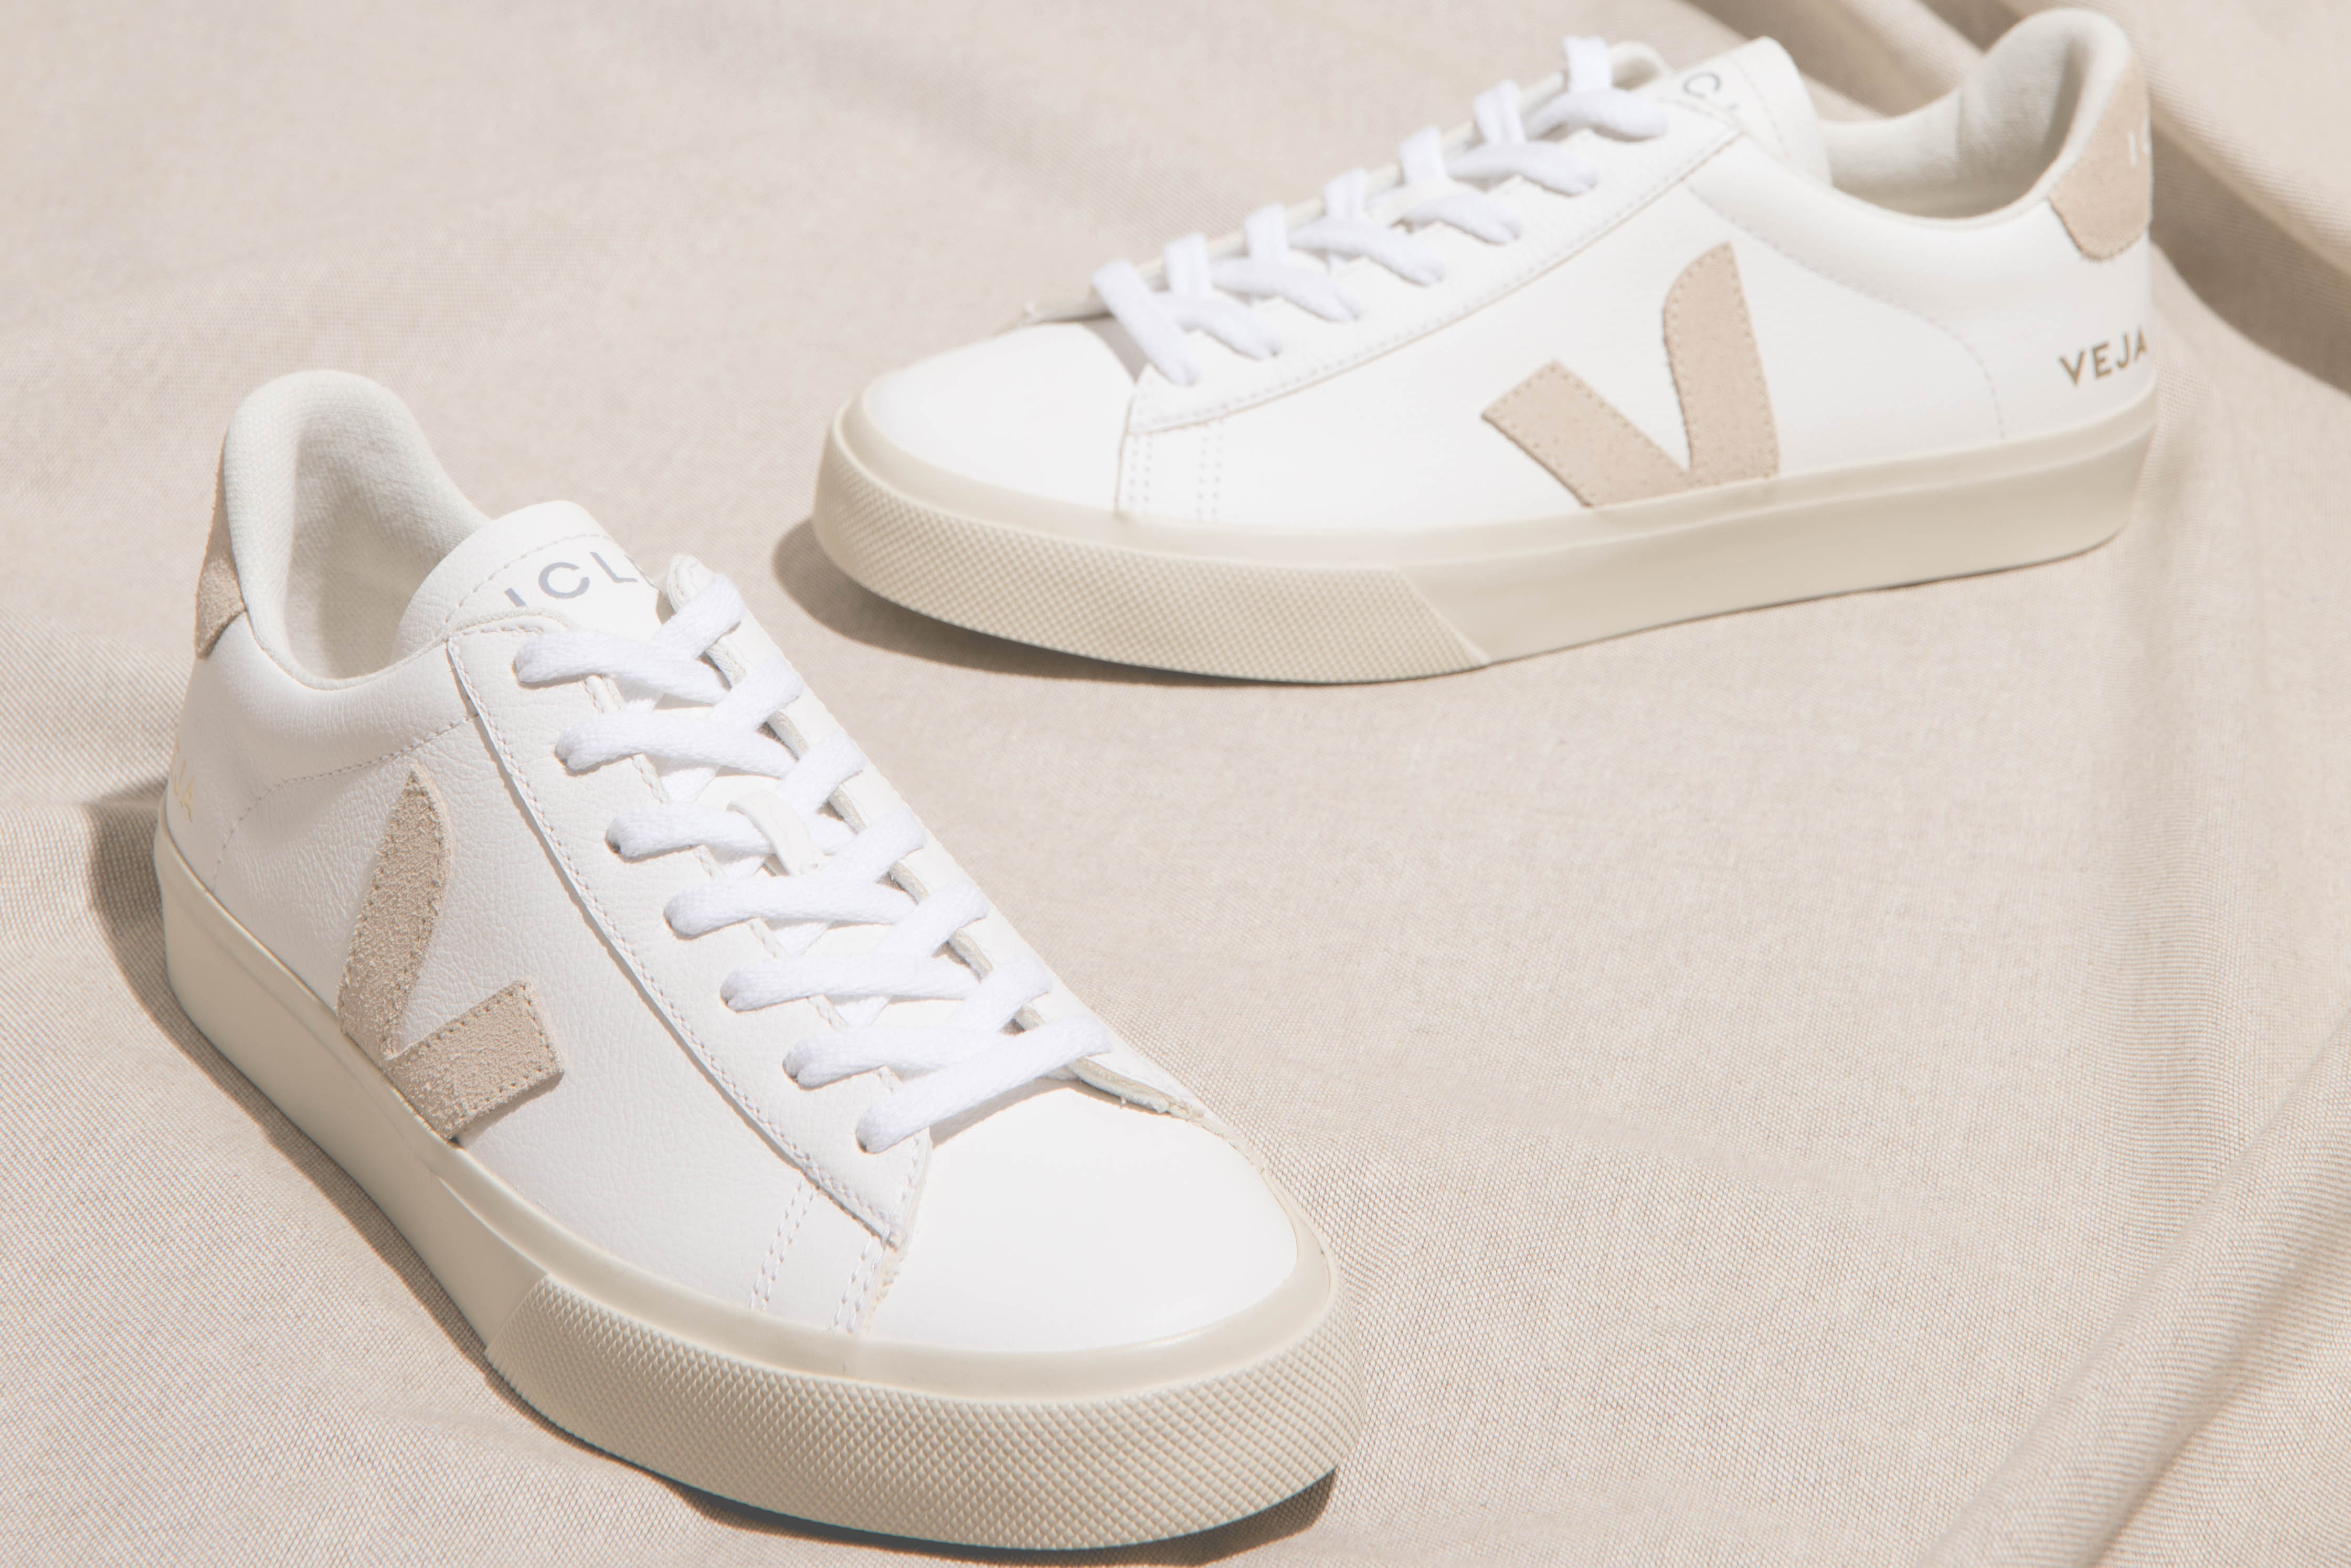 Veja, Icicle collaboration